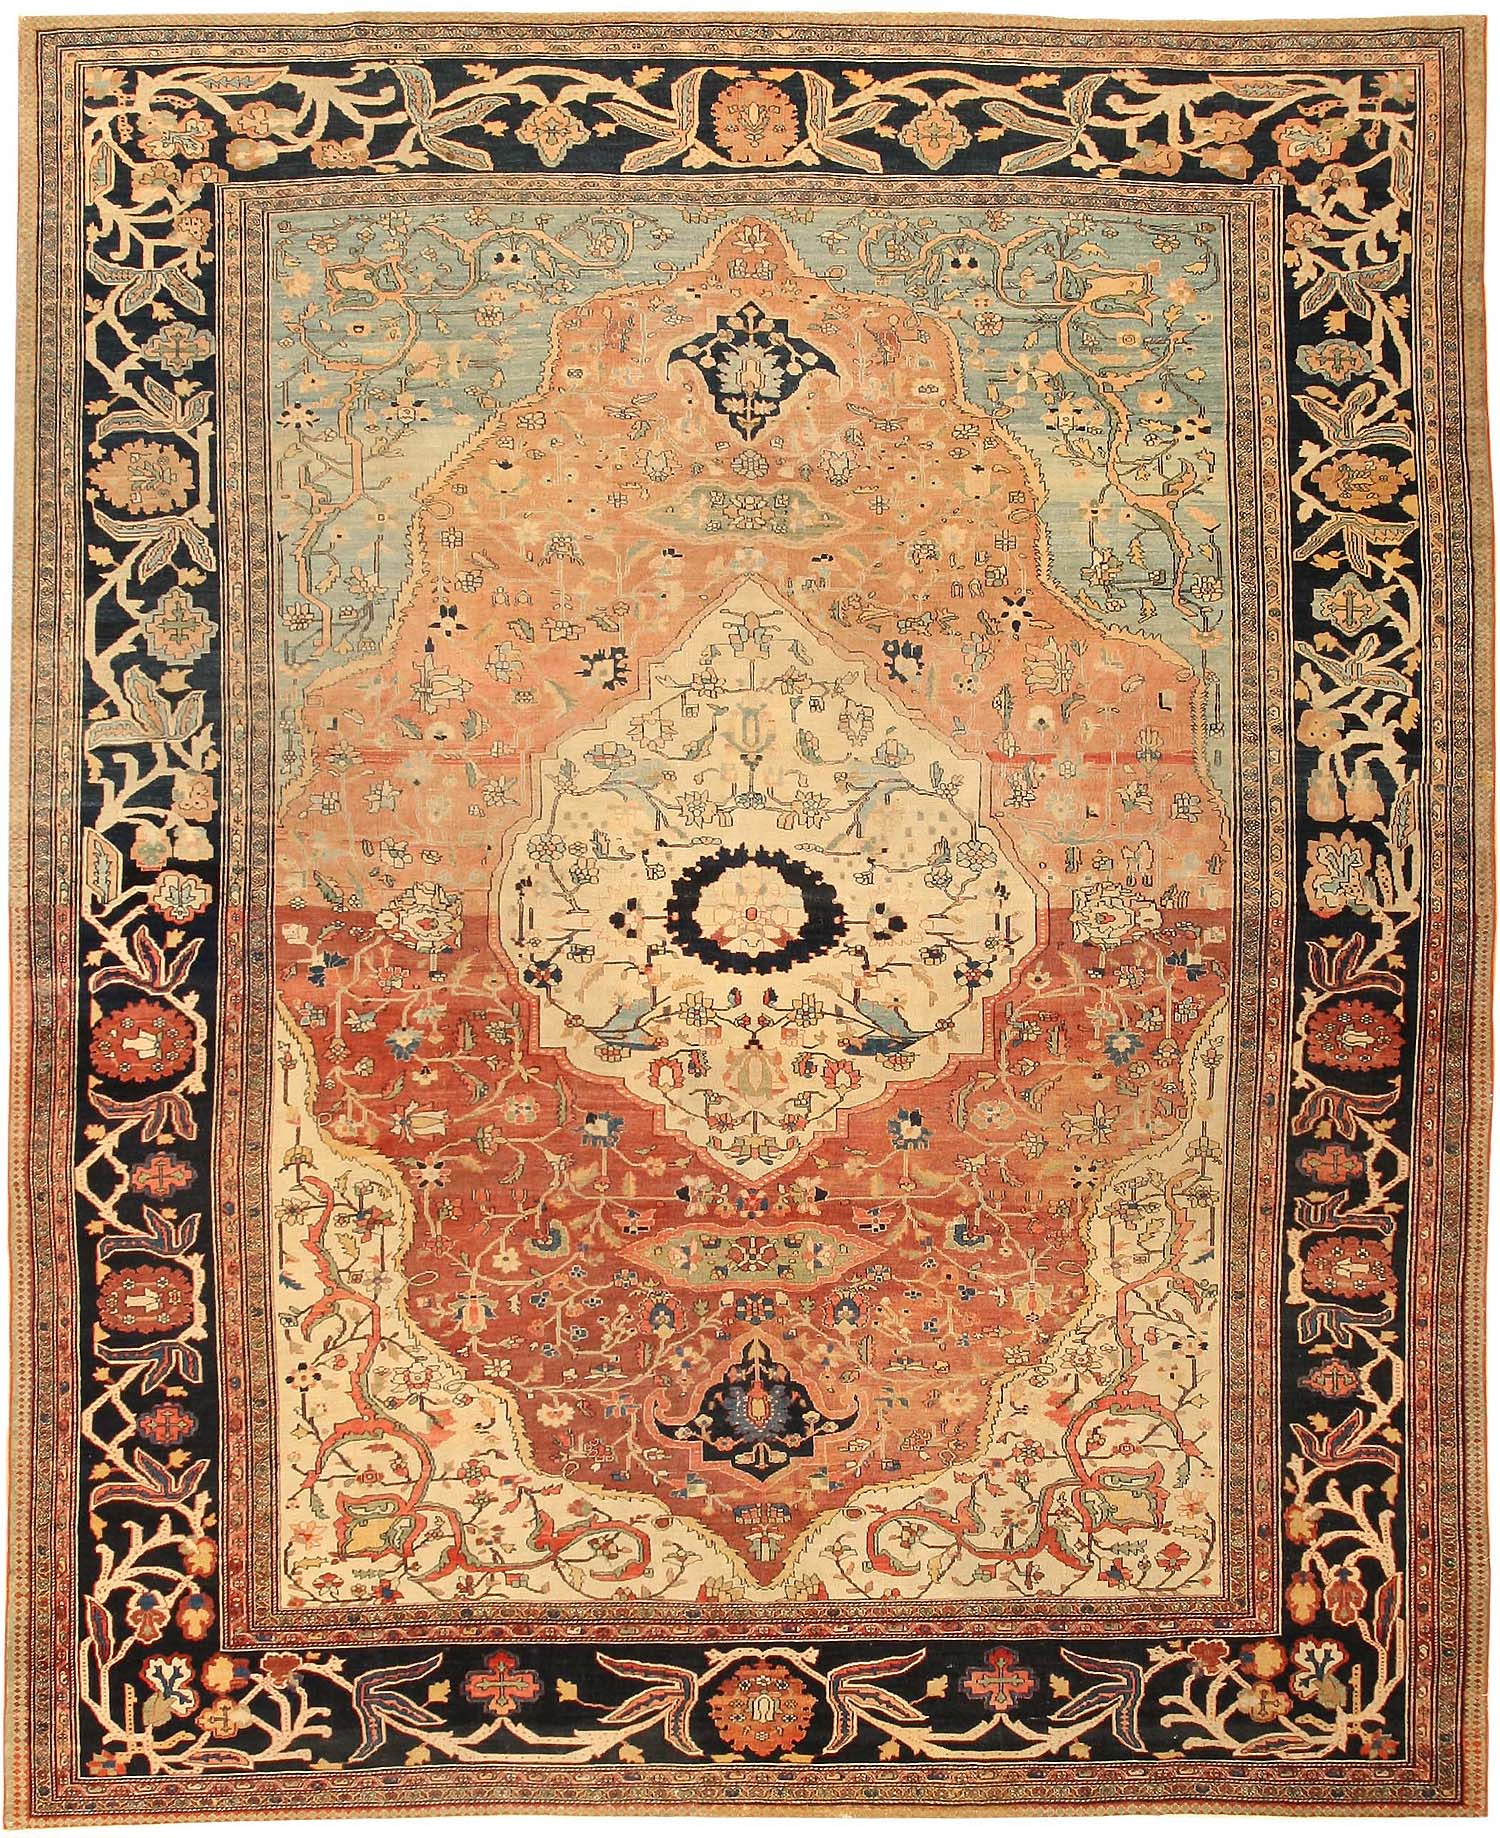 Persian Rugs For Sale: Antique Sarouk Farahan Persian Rug 43371 For Sale